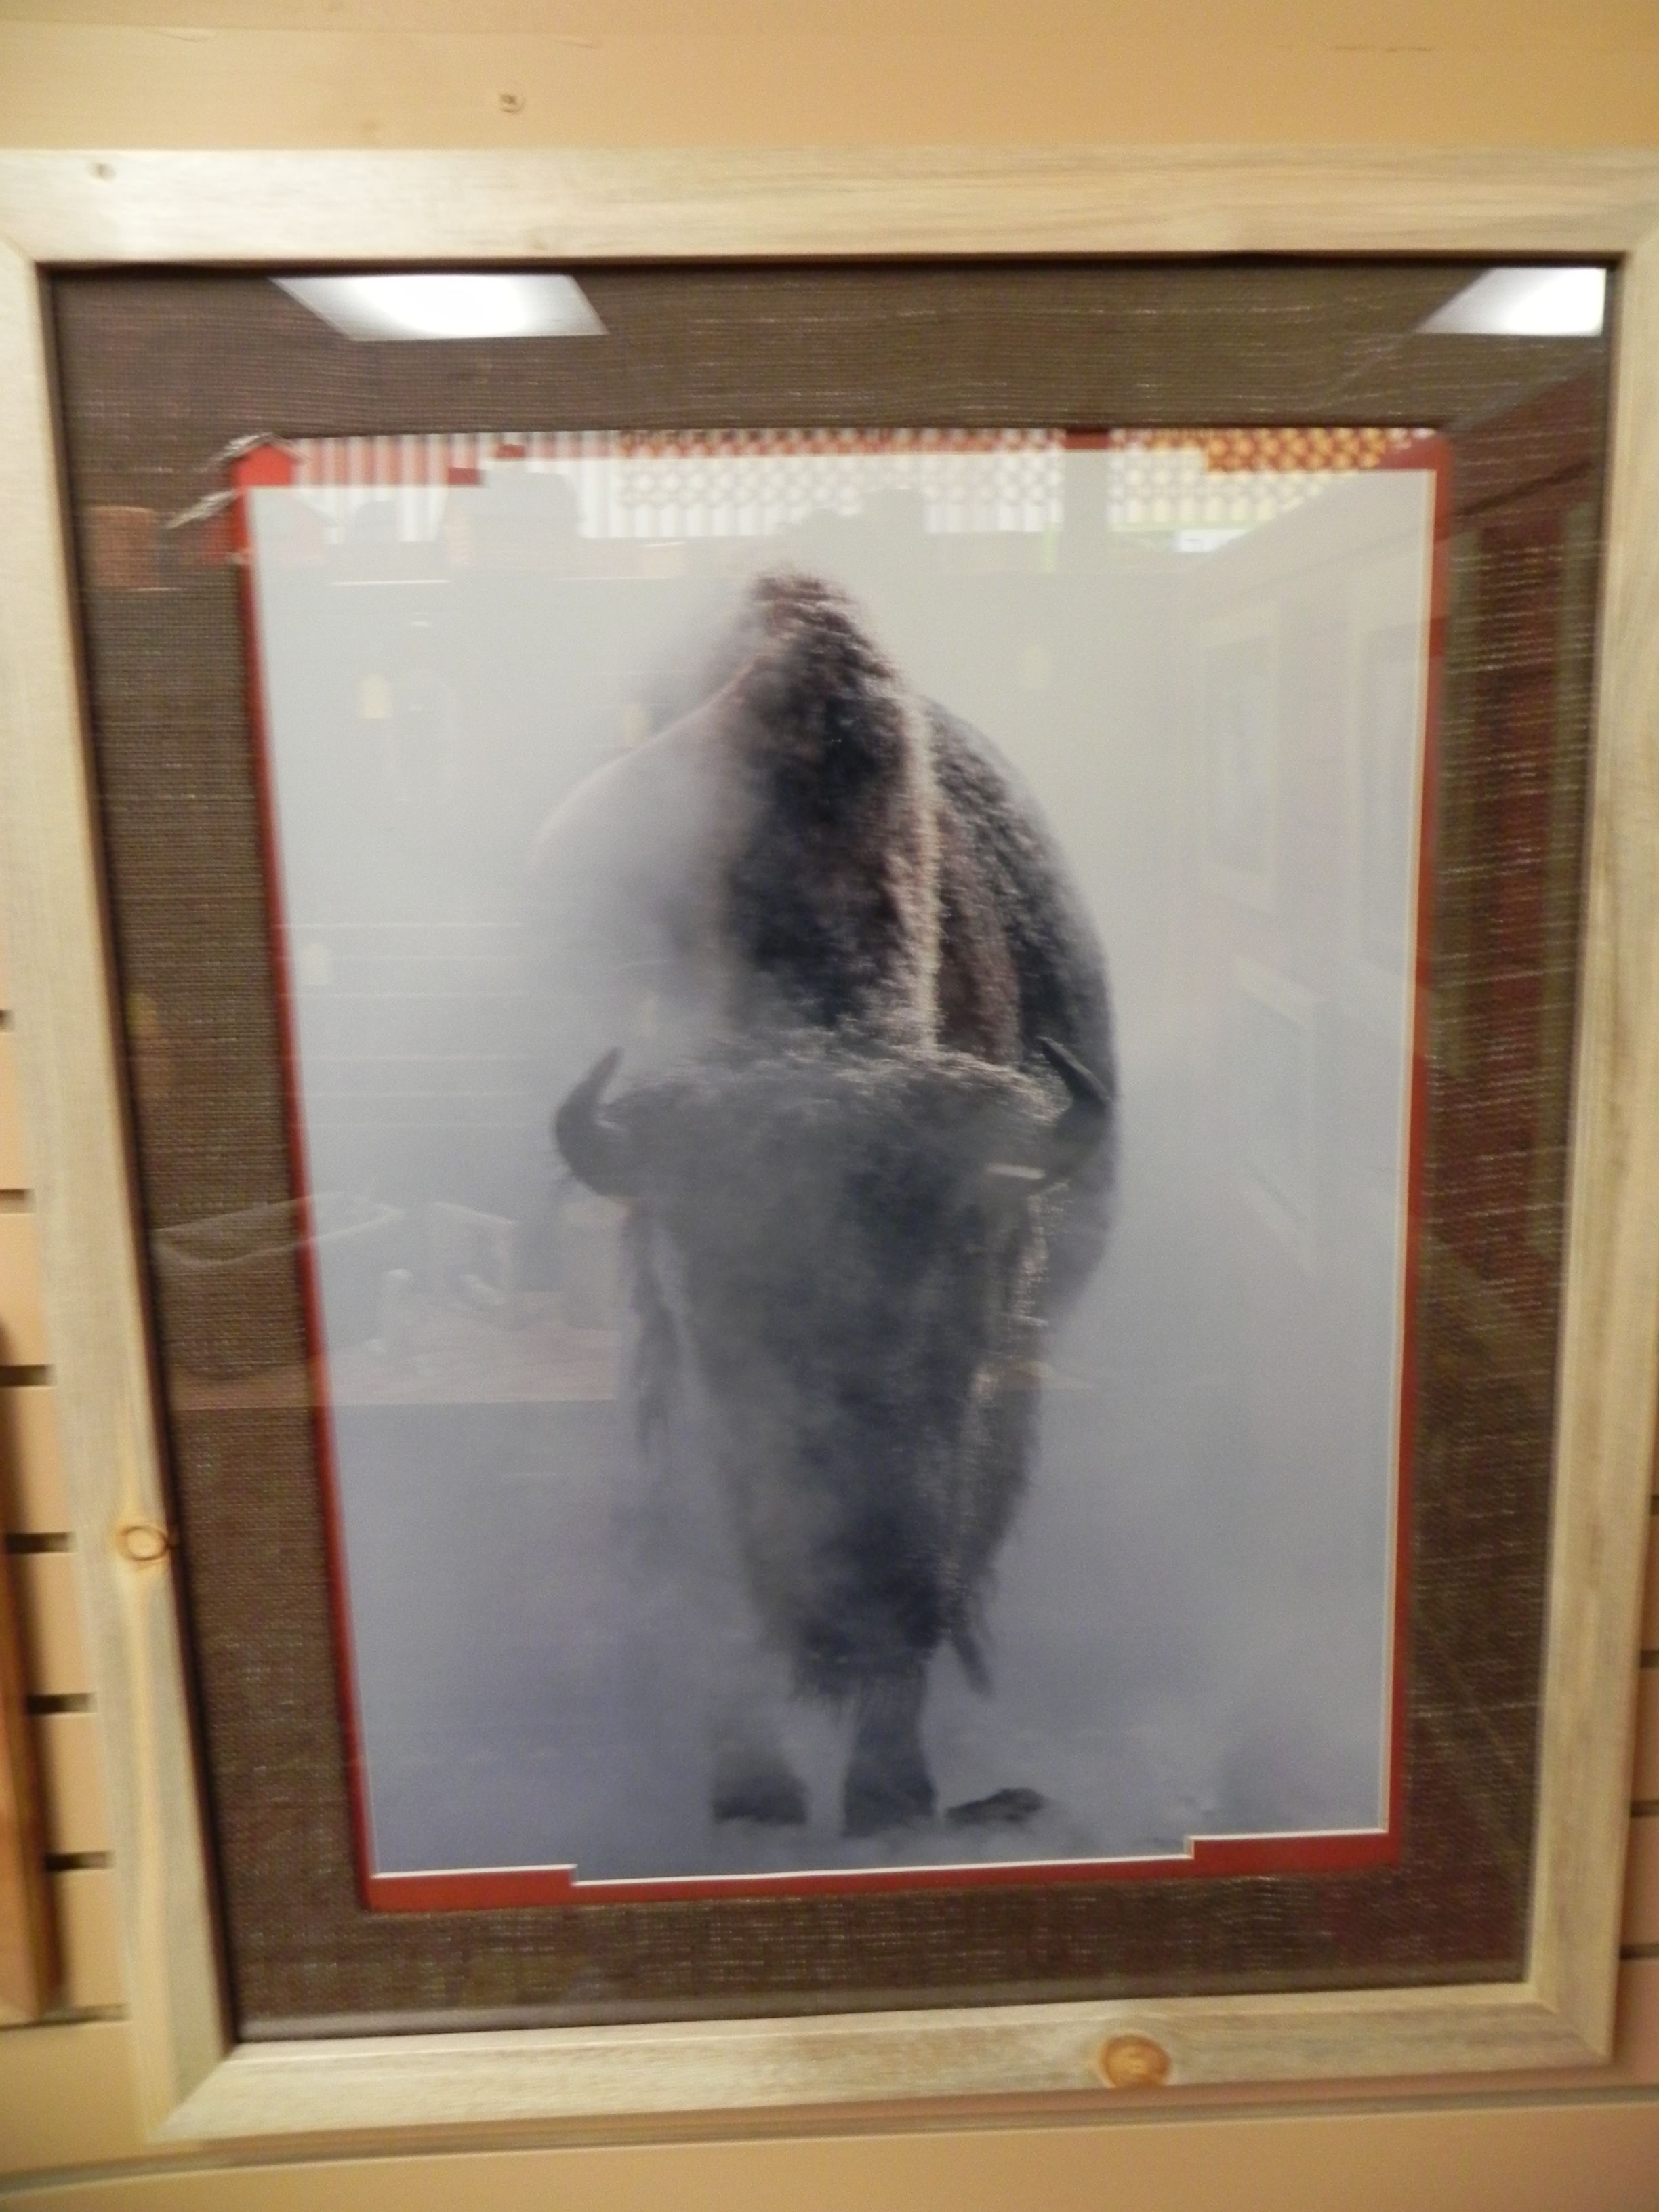 Size 26 X 32 Framed In Beetle Kill Pine Thick Frame Burlap